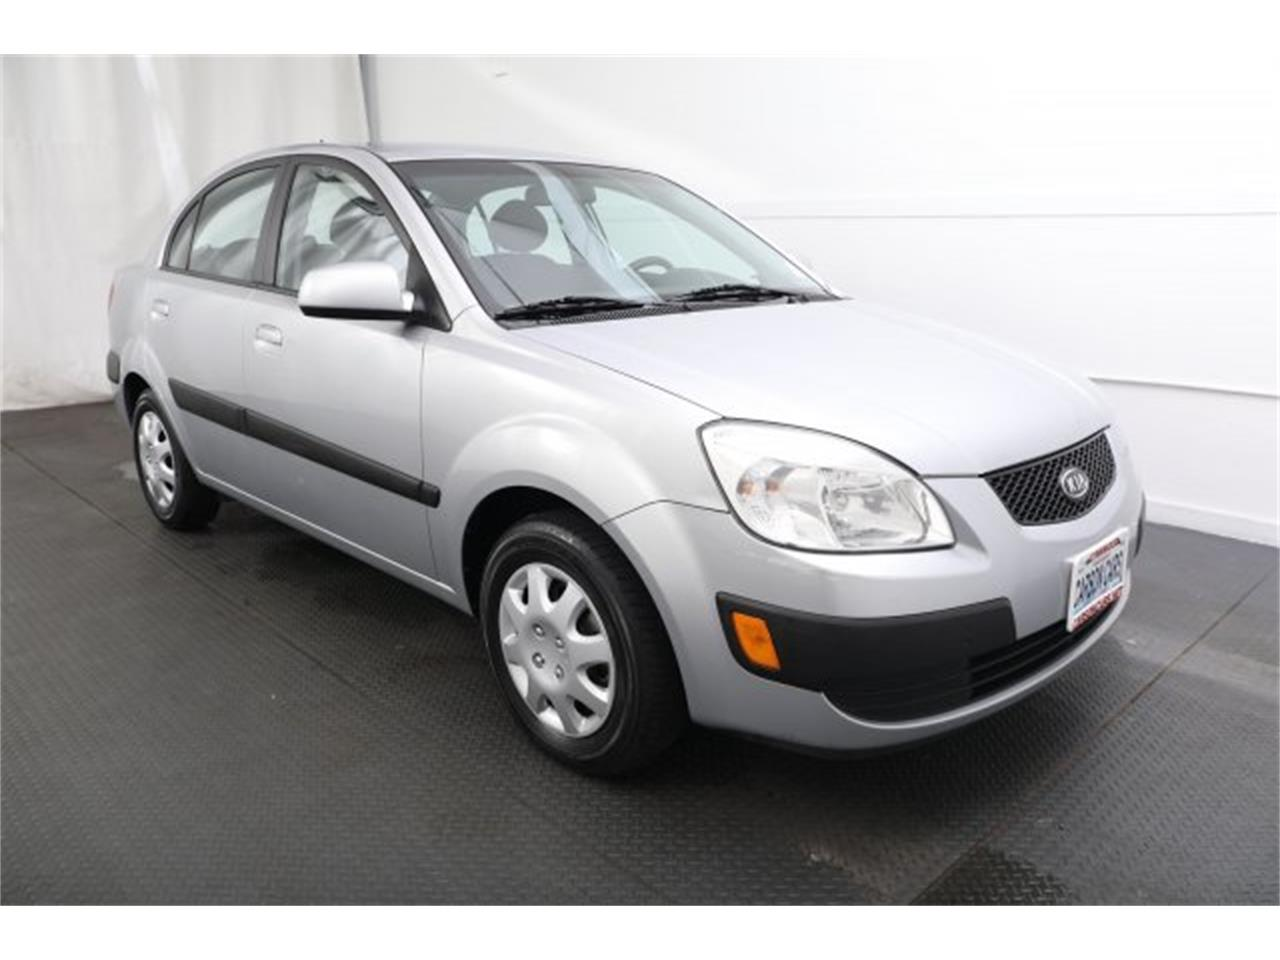 Large Picture of '07 Kia Rio located in Washington - LB8T